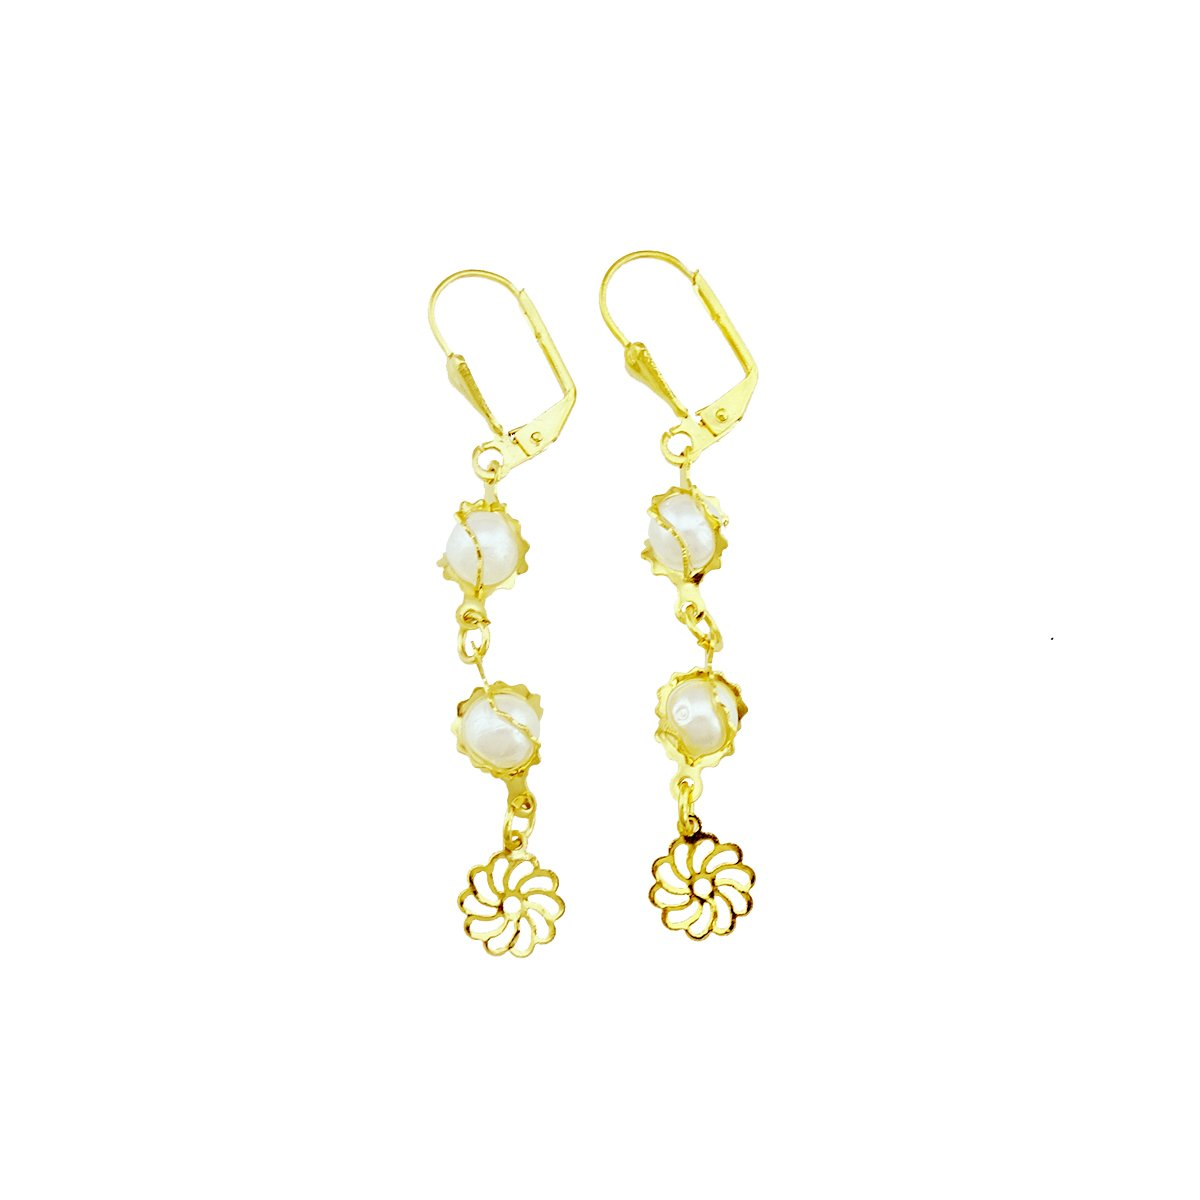 32157ae88a0 Amazon.com  Passage 7 18K Real Gold Plated Pearl Tassel Pendant Earrings   Jewelry